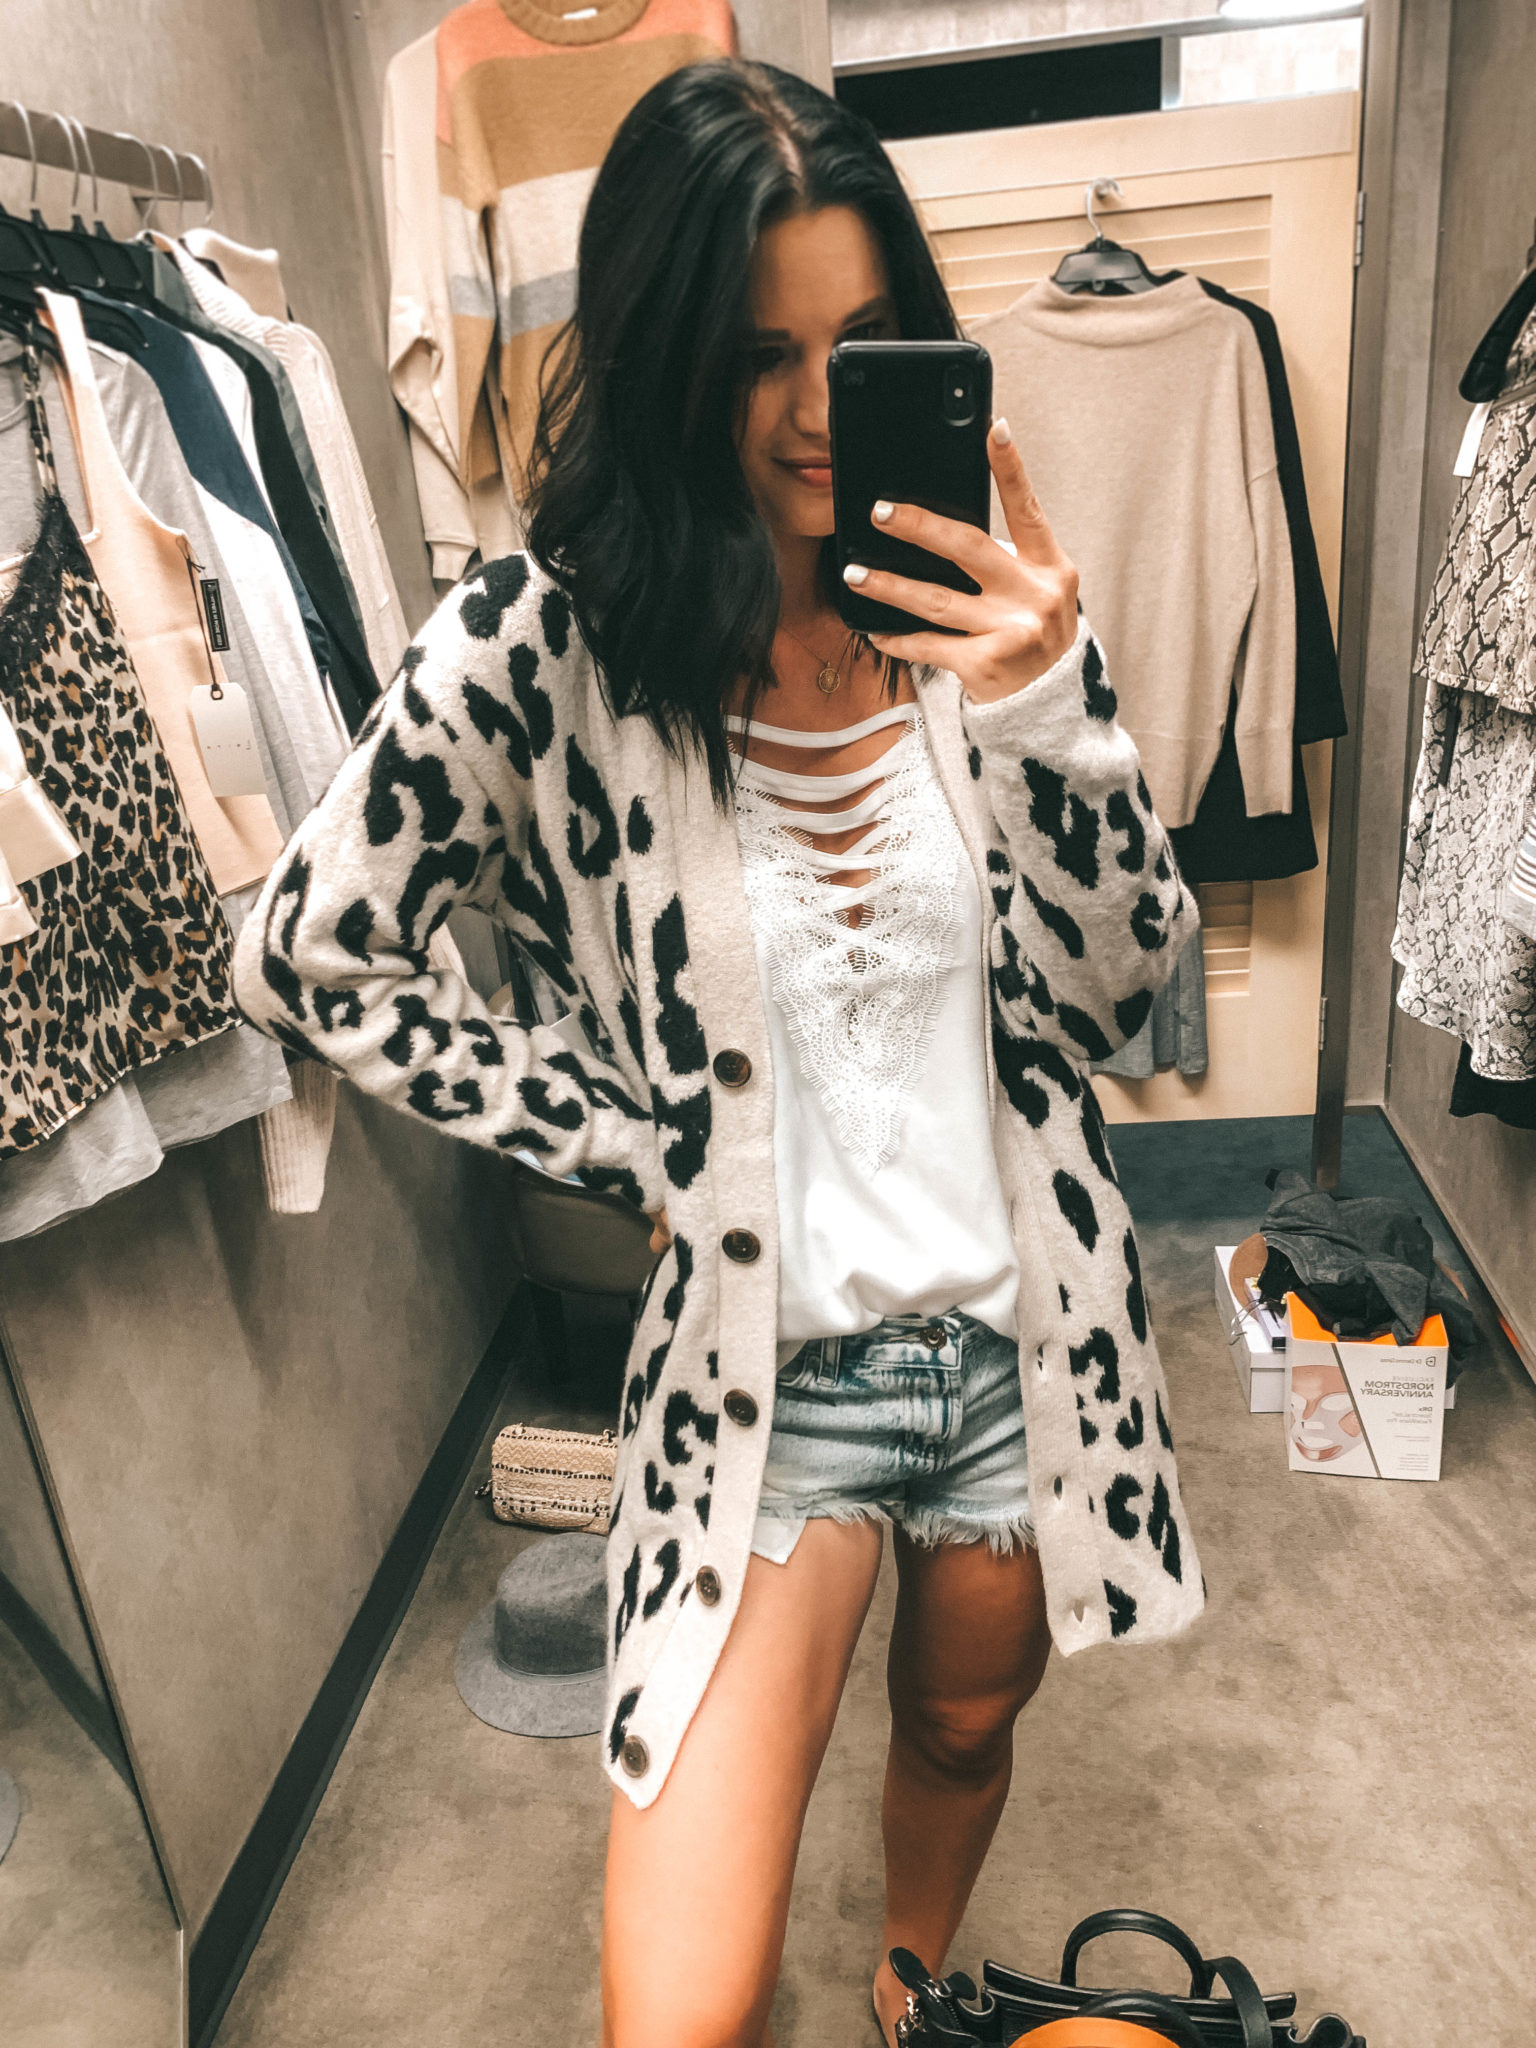 Top 11 Must Have Pieces from the Nordstrom Anniversary Sale by popular Austin fashion blog, Dressed to Kill: image of a woman in a Nordstrom dressing room wearing a Long Leopard Jacquard Cardigan by BP.